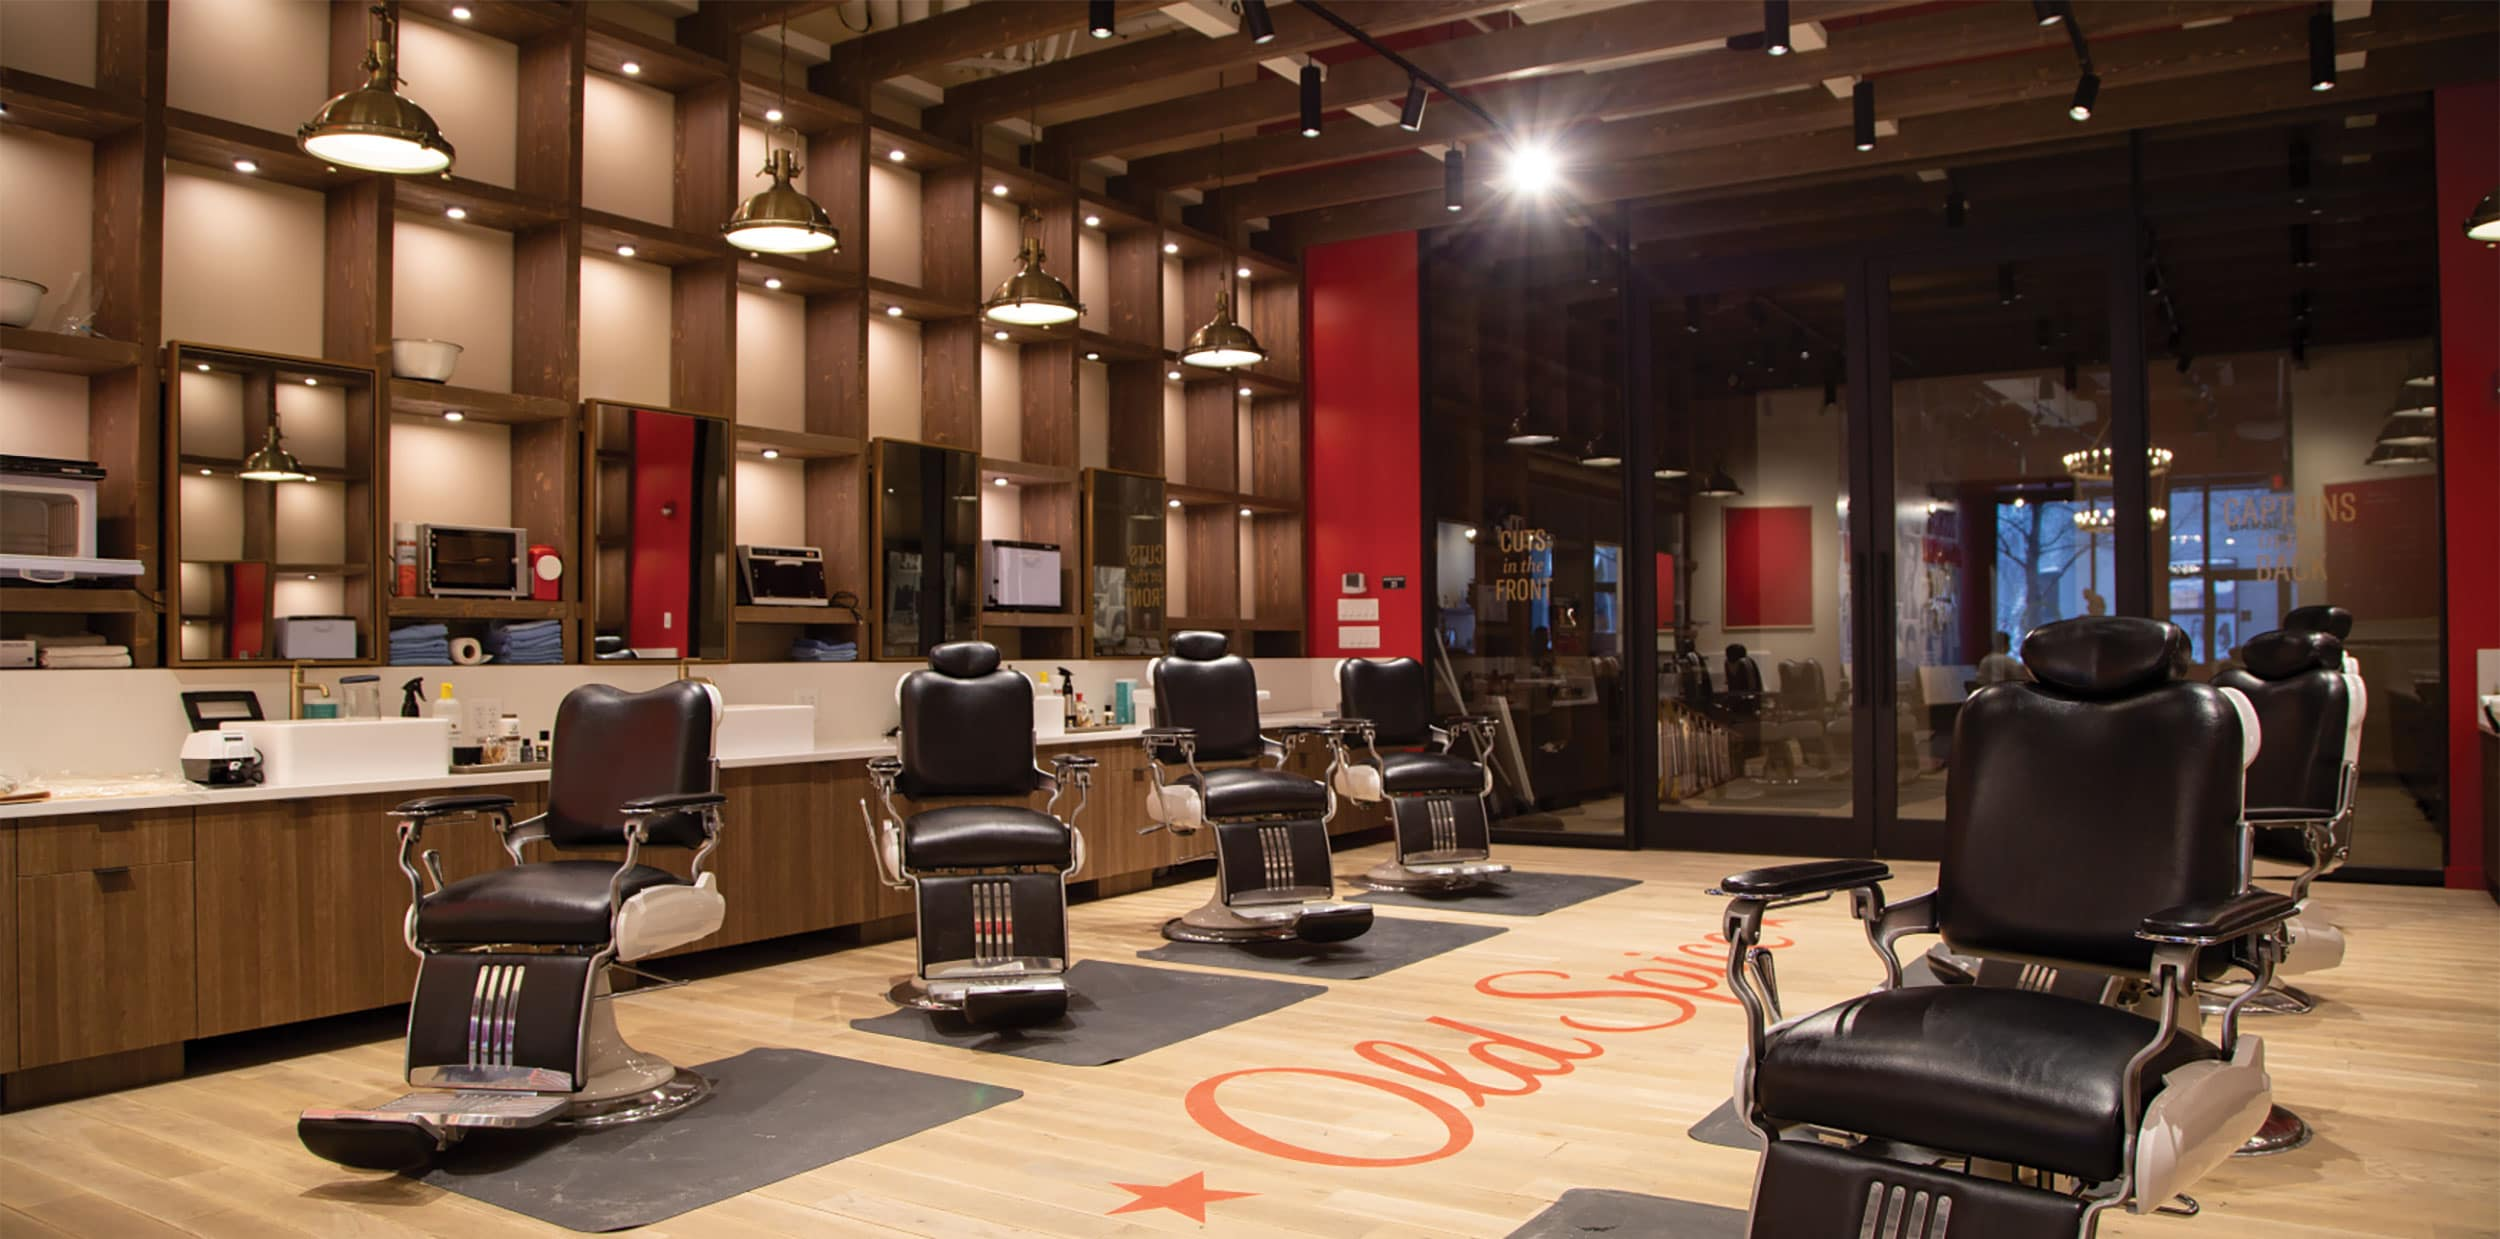 Old Spice Testing New Package Designs at Experiential Barbershop